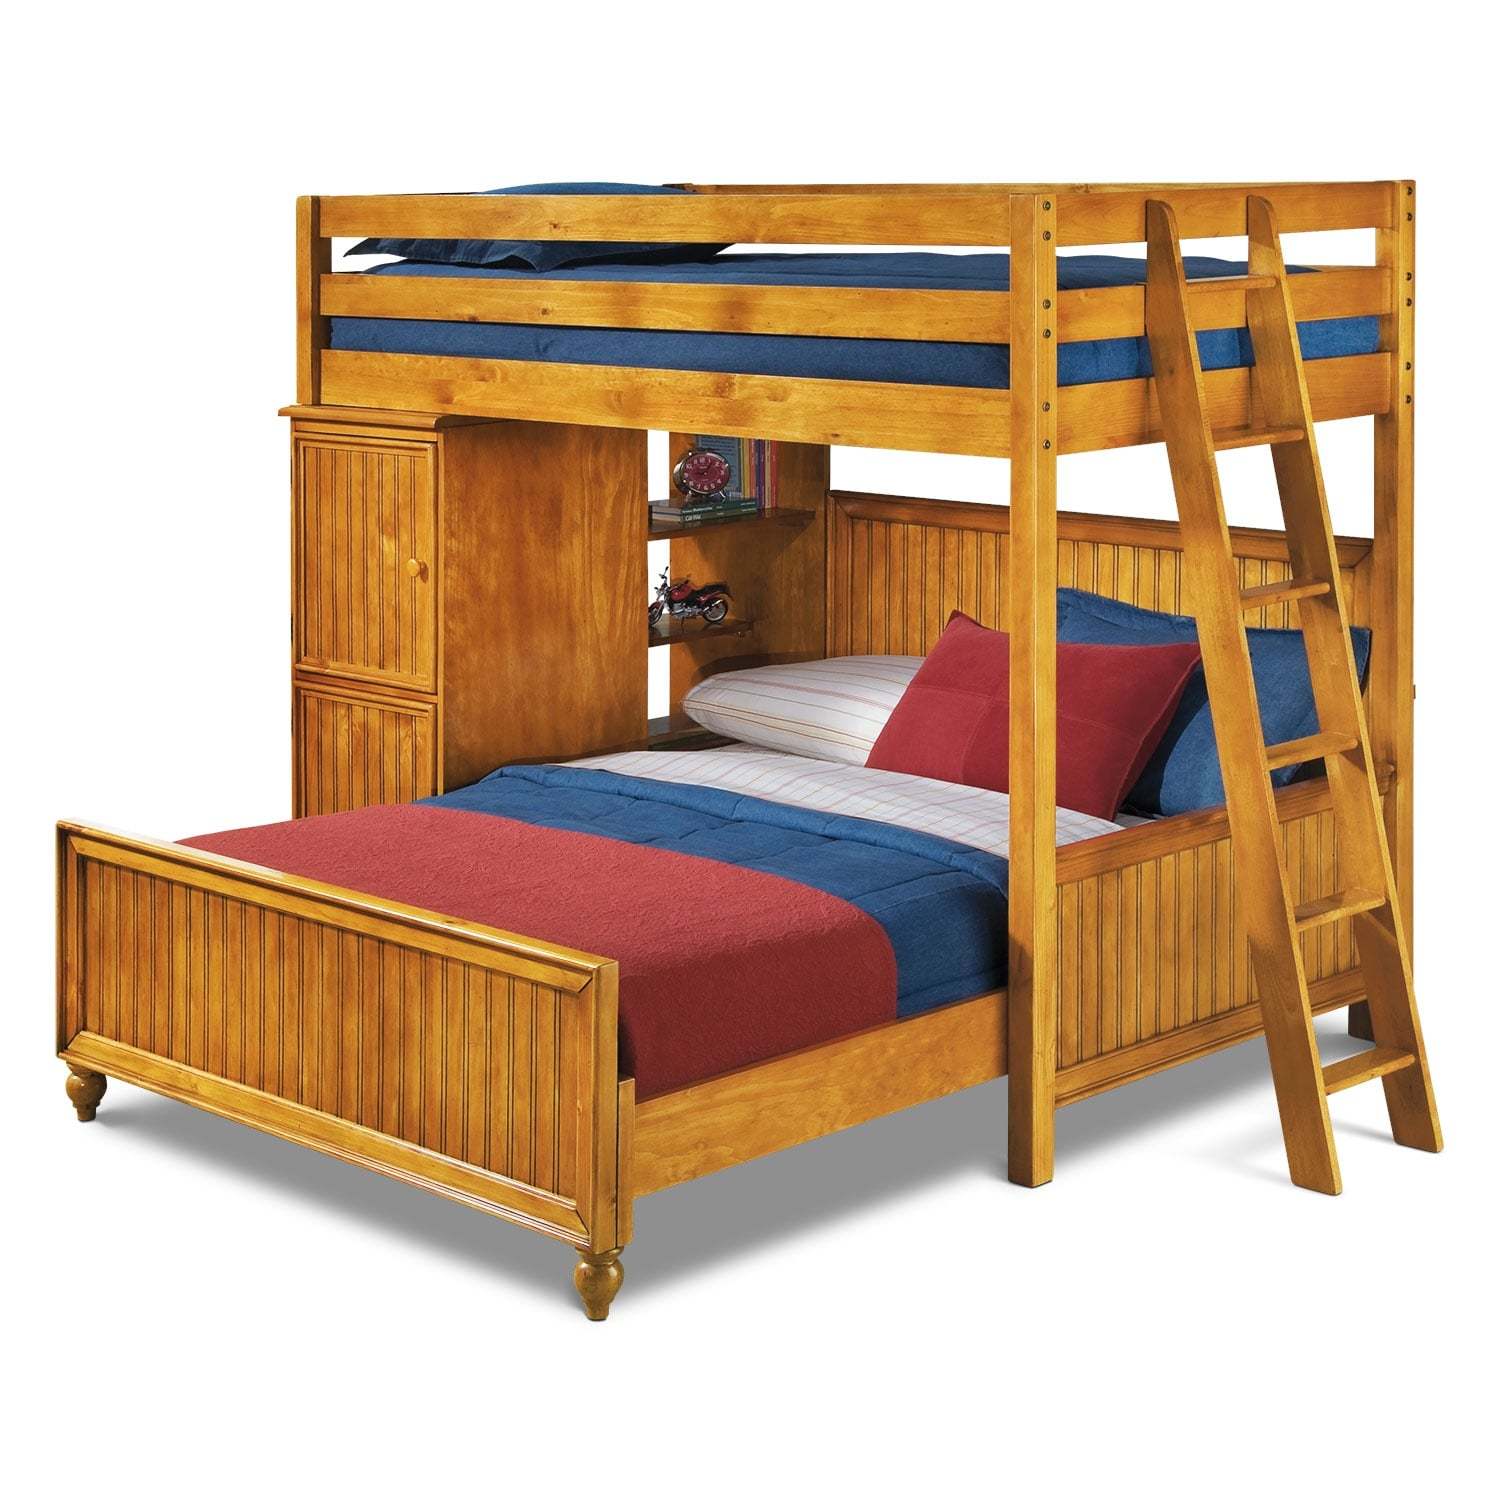 Colorworks Loft Bed With Full Bed   Honey Pine | Value City Furniture And  Mattresses